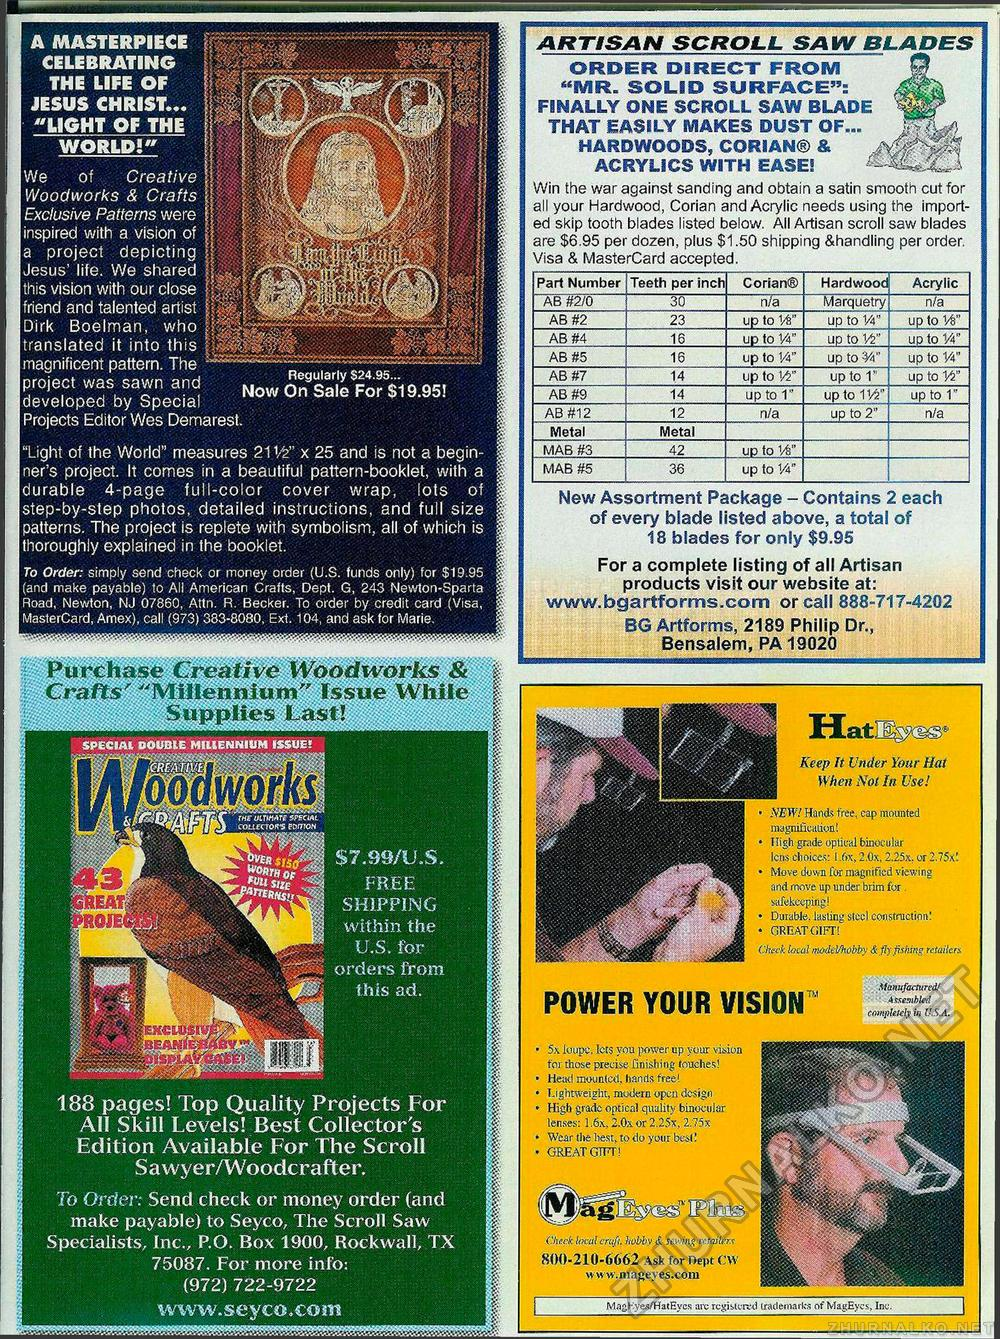 Creative Woodworks & crafts 2003-09, страница 47